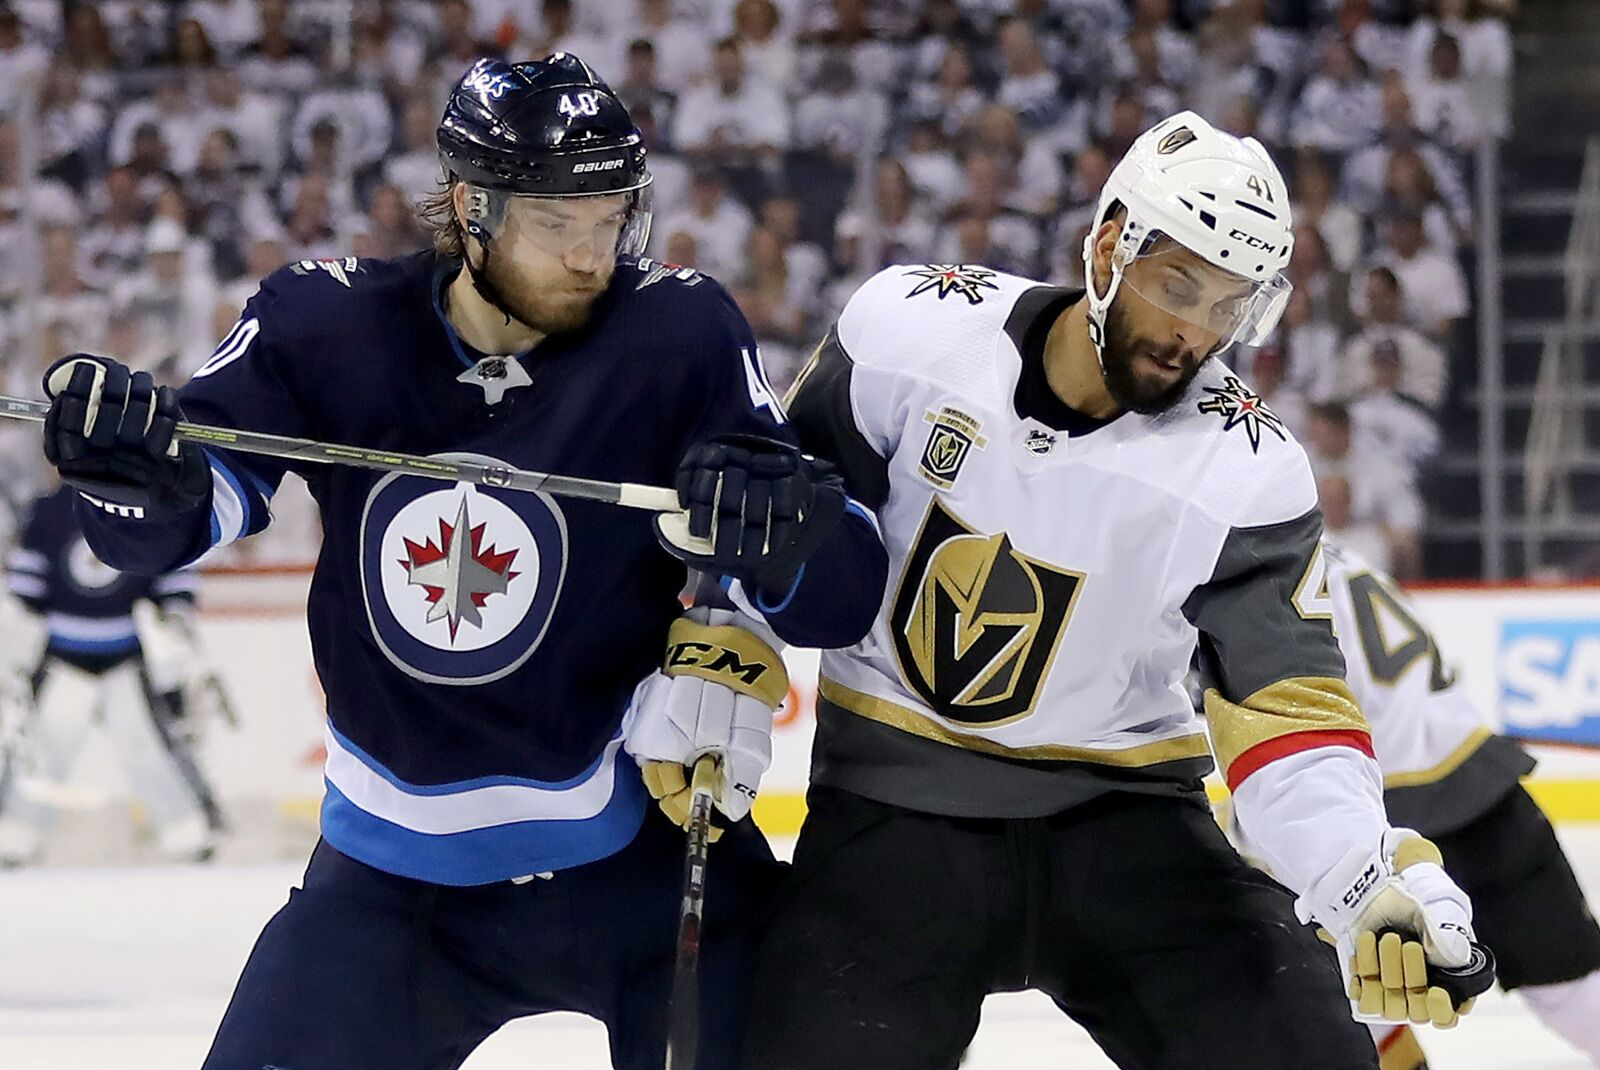 WINNIPEG, MB - MAY 12: Pierre-Edouard Bellemare #41 of the Vegas Golden Knights grabs the puck as Joel Armia #40 of the Winnipeg Jets defends in Game One of the Western Conference Finals during the 2018 NHL Stanley Cup Playoffs at Bell MTS Place on May 12, 2018 in Winnipeg, Canada. (Photo by Elsa/Getty Images)